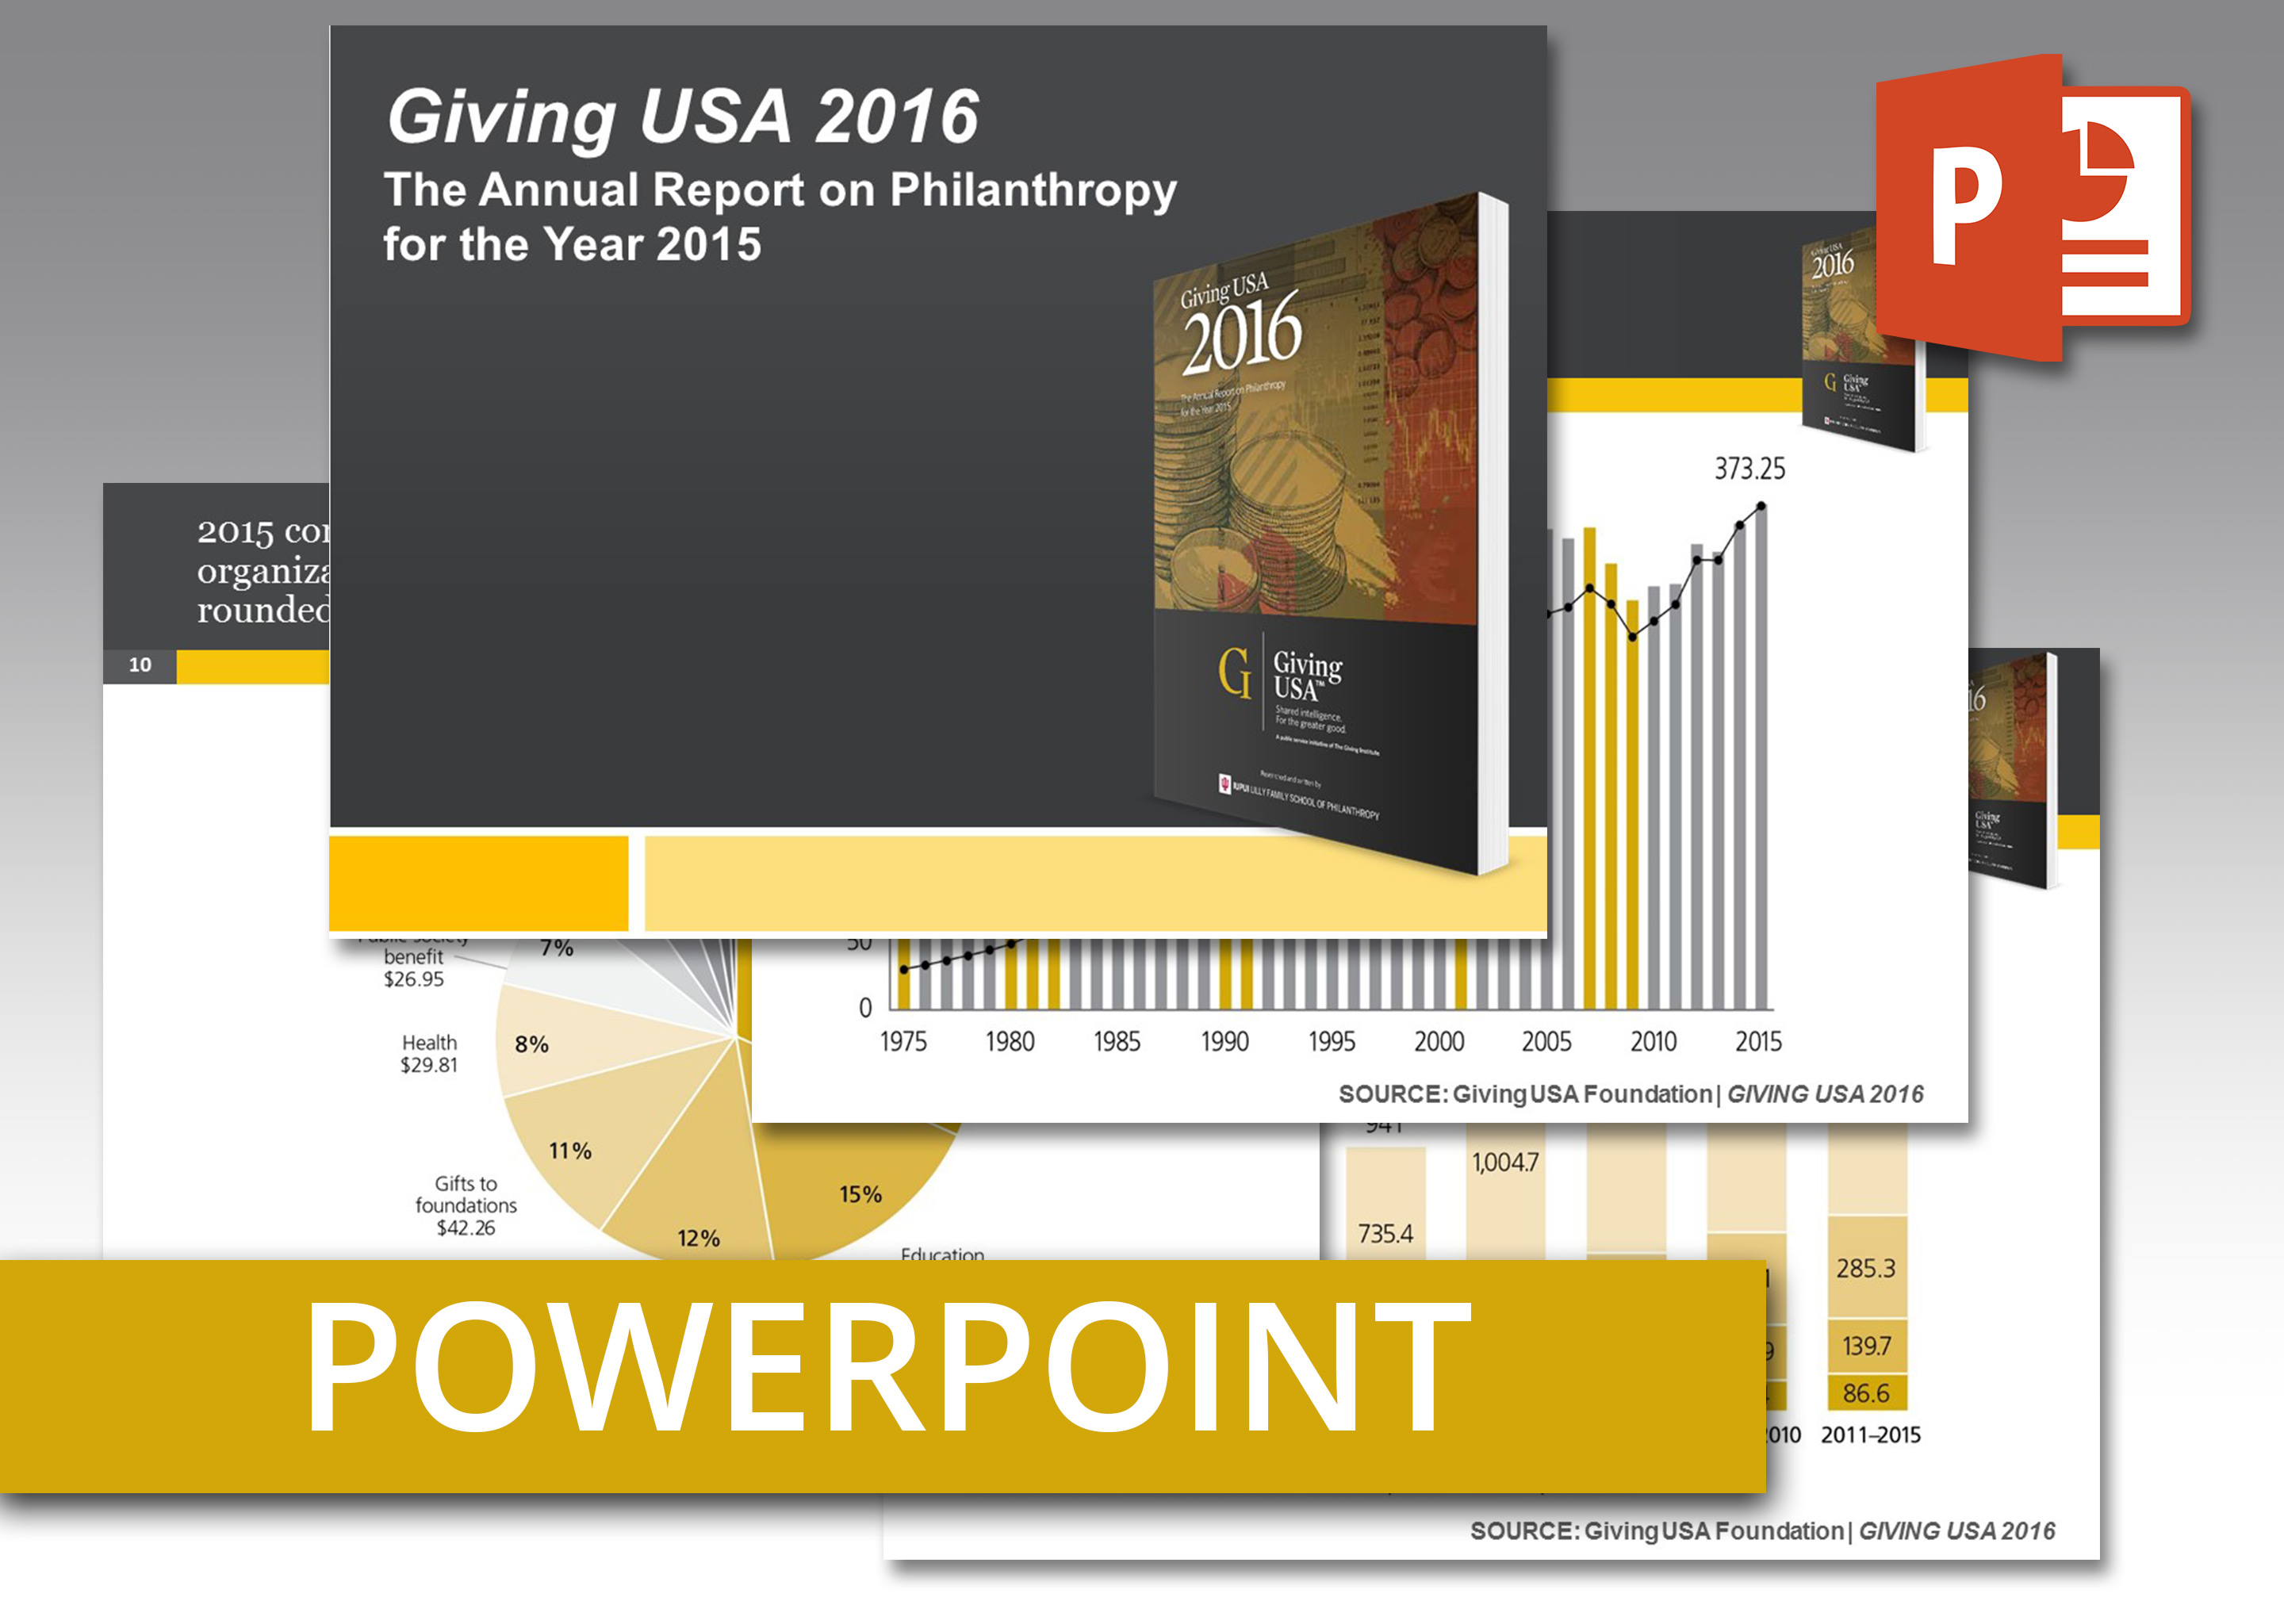 Usdgus  Stunning Giving Usa  Powerpoint An Easytouse Presentation Of Report  With Extraordinary Giving Usa  Powerpoint An Easytouse Presentation Of Report Findings Including Talking Points With Cute Pasting Excel Into Powerpoint Also Microsoft Powerpoint Themes  Free Download In Addition How Do You Add Video To Powerpoint And Microsoft Free Powerpoint As Well As Cool Powerpoint Background Designs Additionally Sales Funnel Template Powerpoint From Givingusaorg With Usdgus  Extraordinary Giving Usa  Powerpoint An Easytouse Presentation Of Report  With Cute Giving Usa  Powerpoint An Easytouse Presentation Of Report Findings Including Talking Points And Stunning Pasting Excel Into Powerpoint Also Microsoft Powerpoint Themes  Free Download In Addition How Do You Add Video To Powerpoint From Givingusaorg